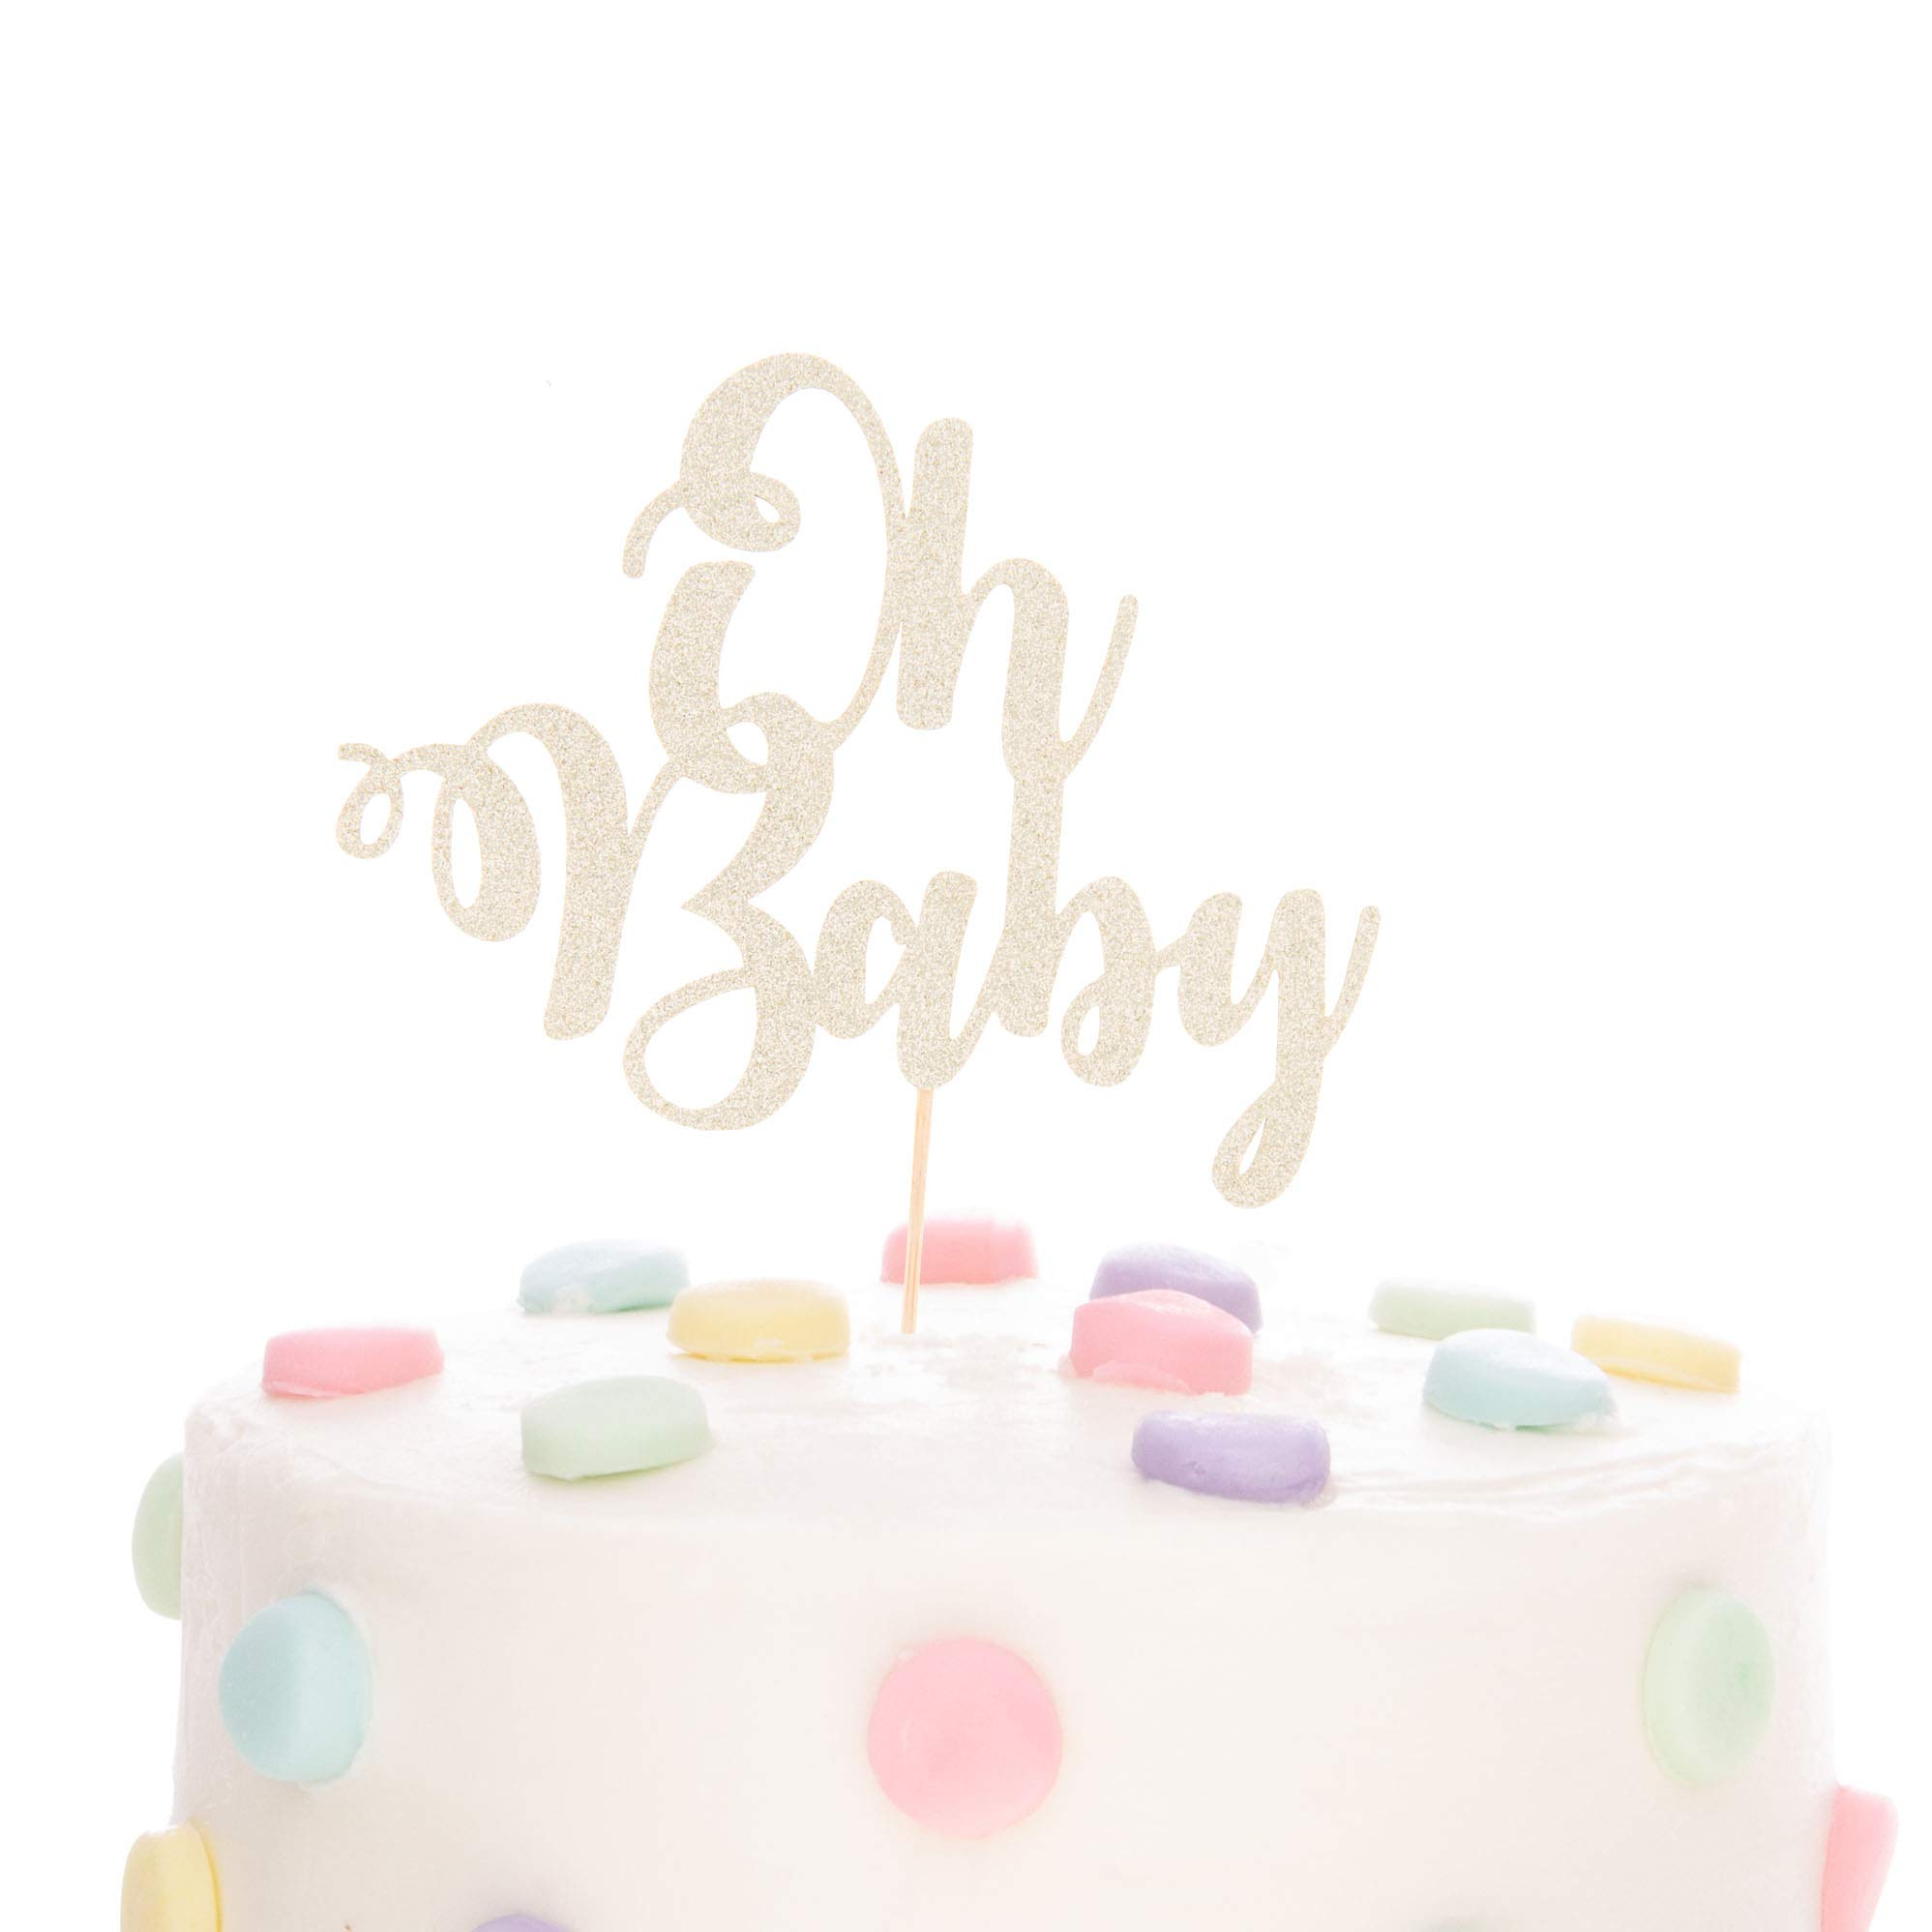 Ella Celebration Oh Baby Cake Topper Glitter Double Sided Cardstock Paperboard Toppers, Baby Shower Gender Reveal Photo Props Paper Decoration for First Birthday Celebrations (Oh Baby Light Gold)